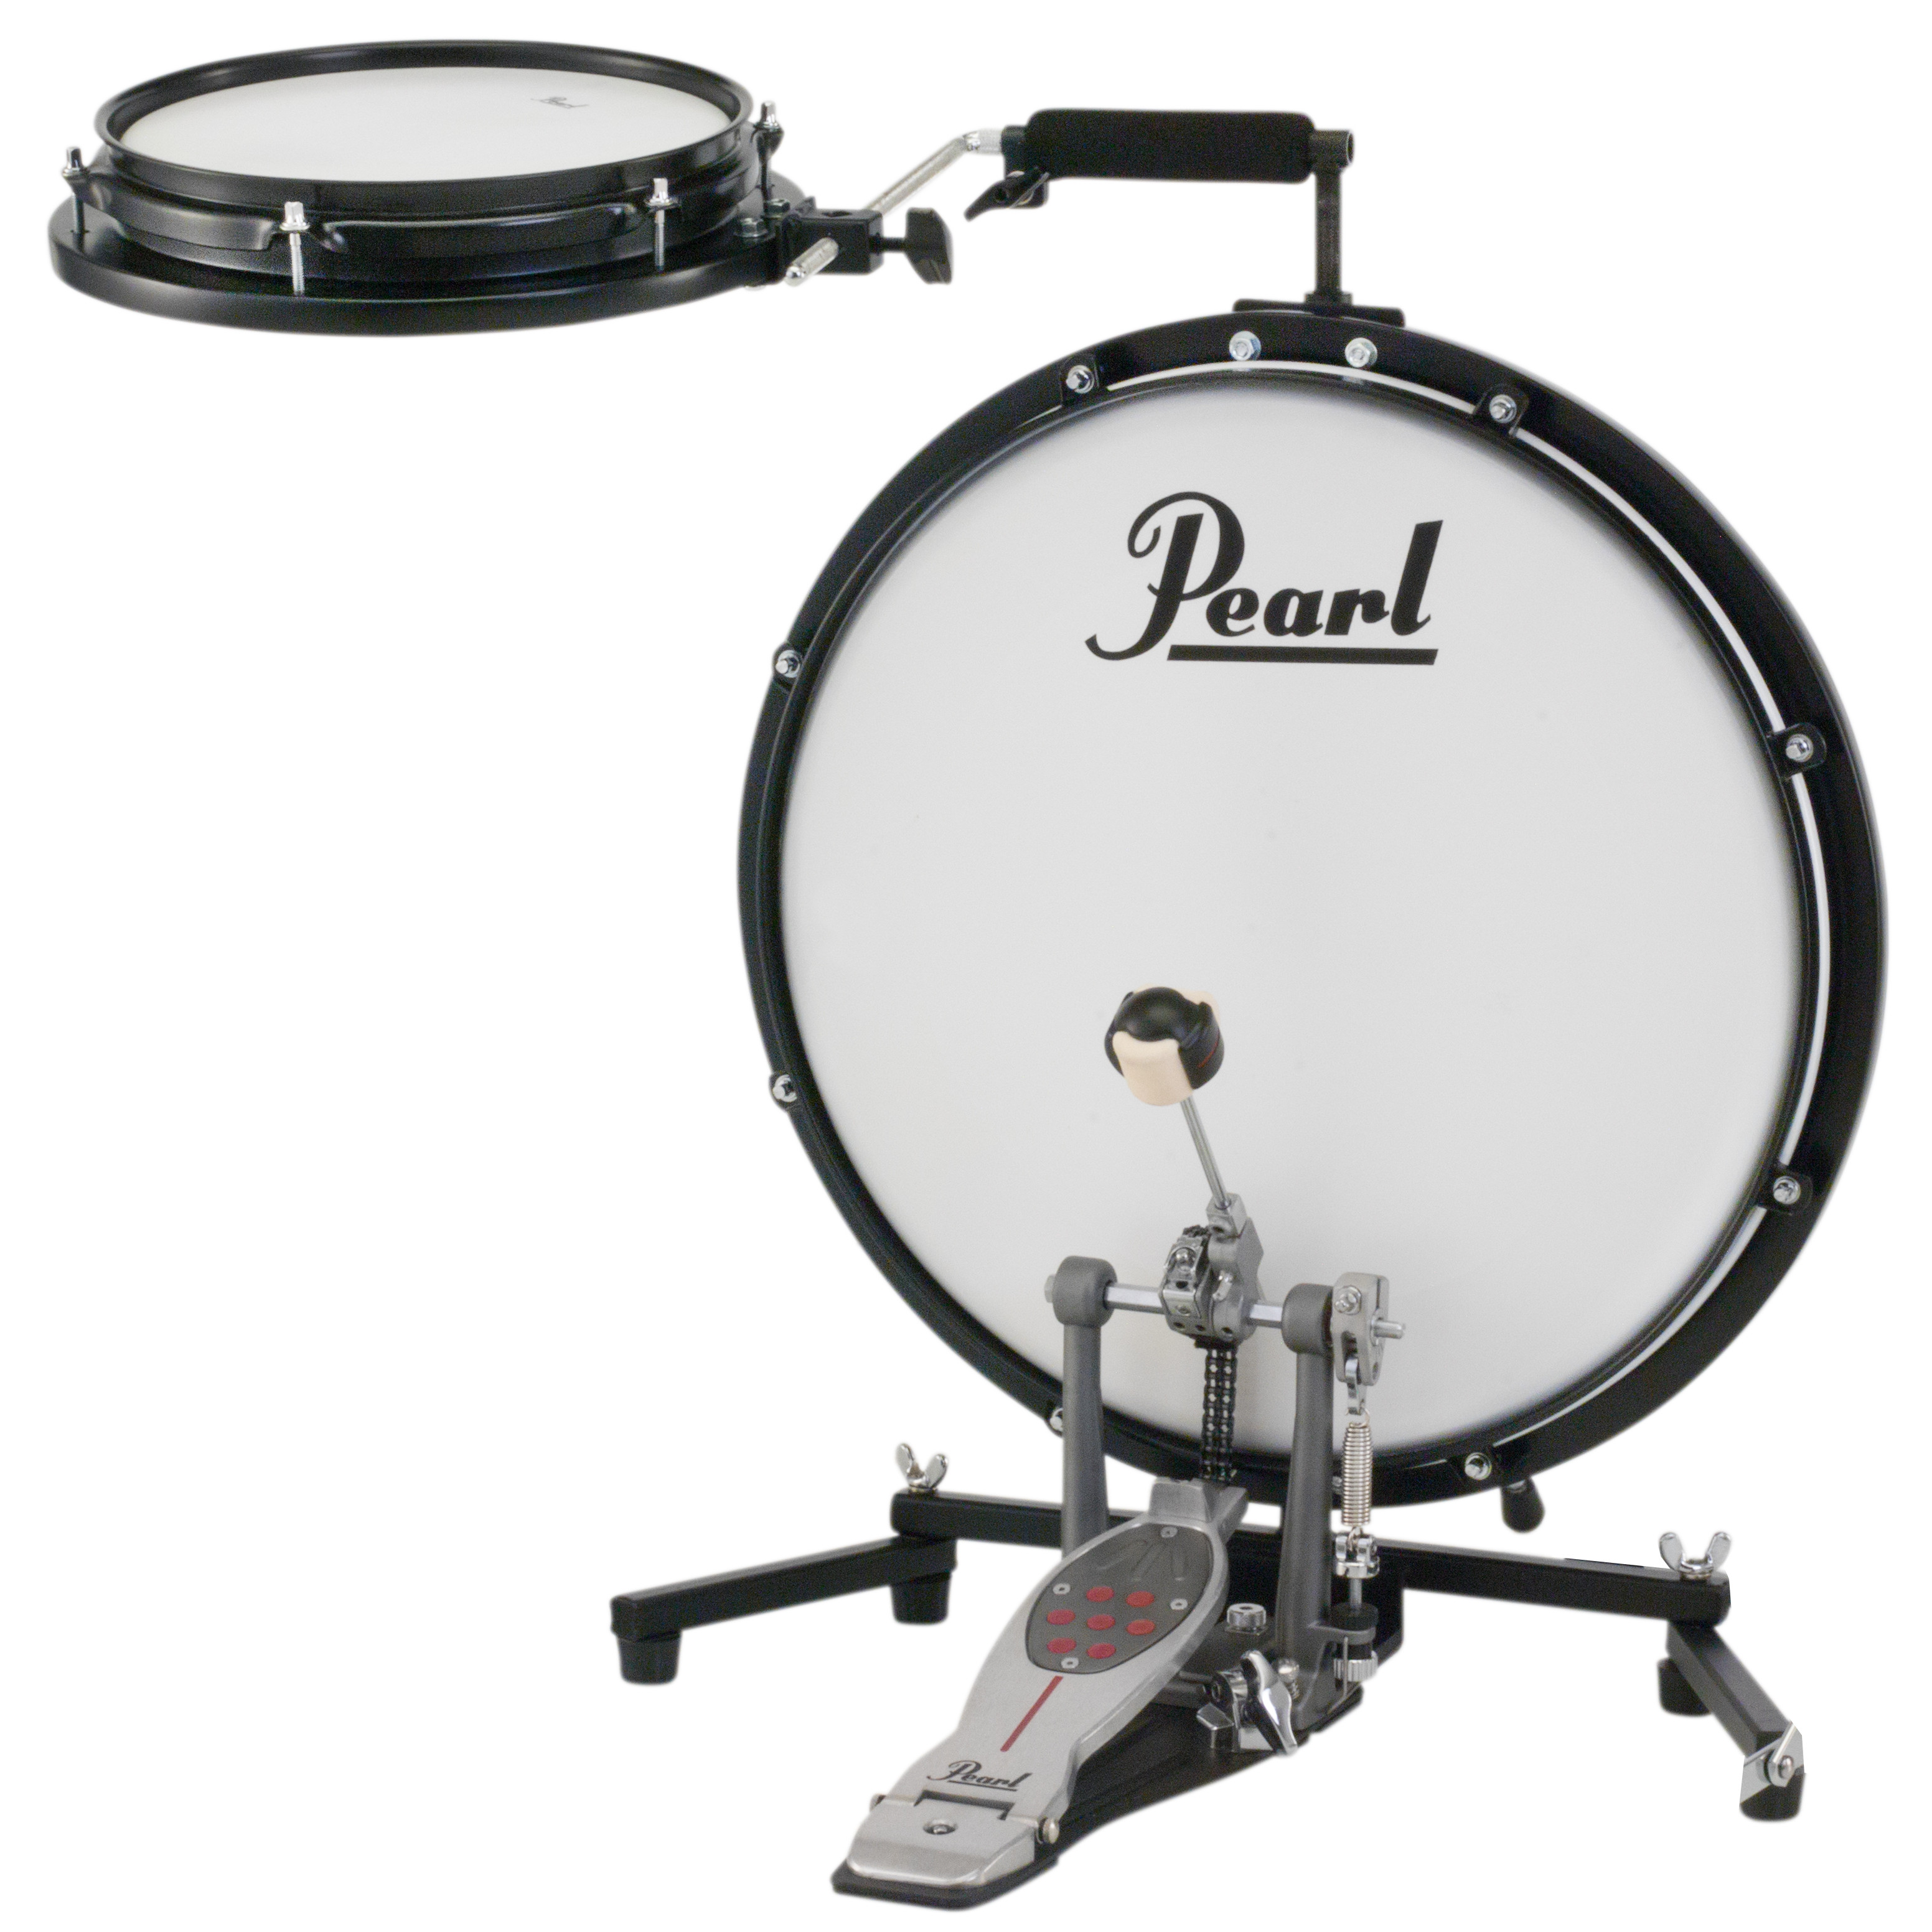 Pearl PCTK 1810 Compact Traveller Kit